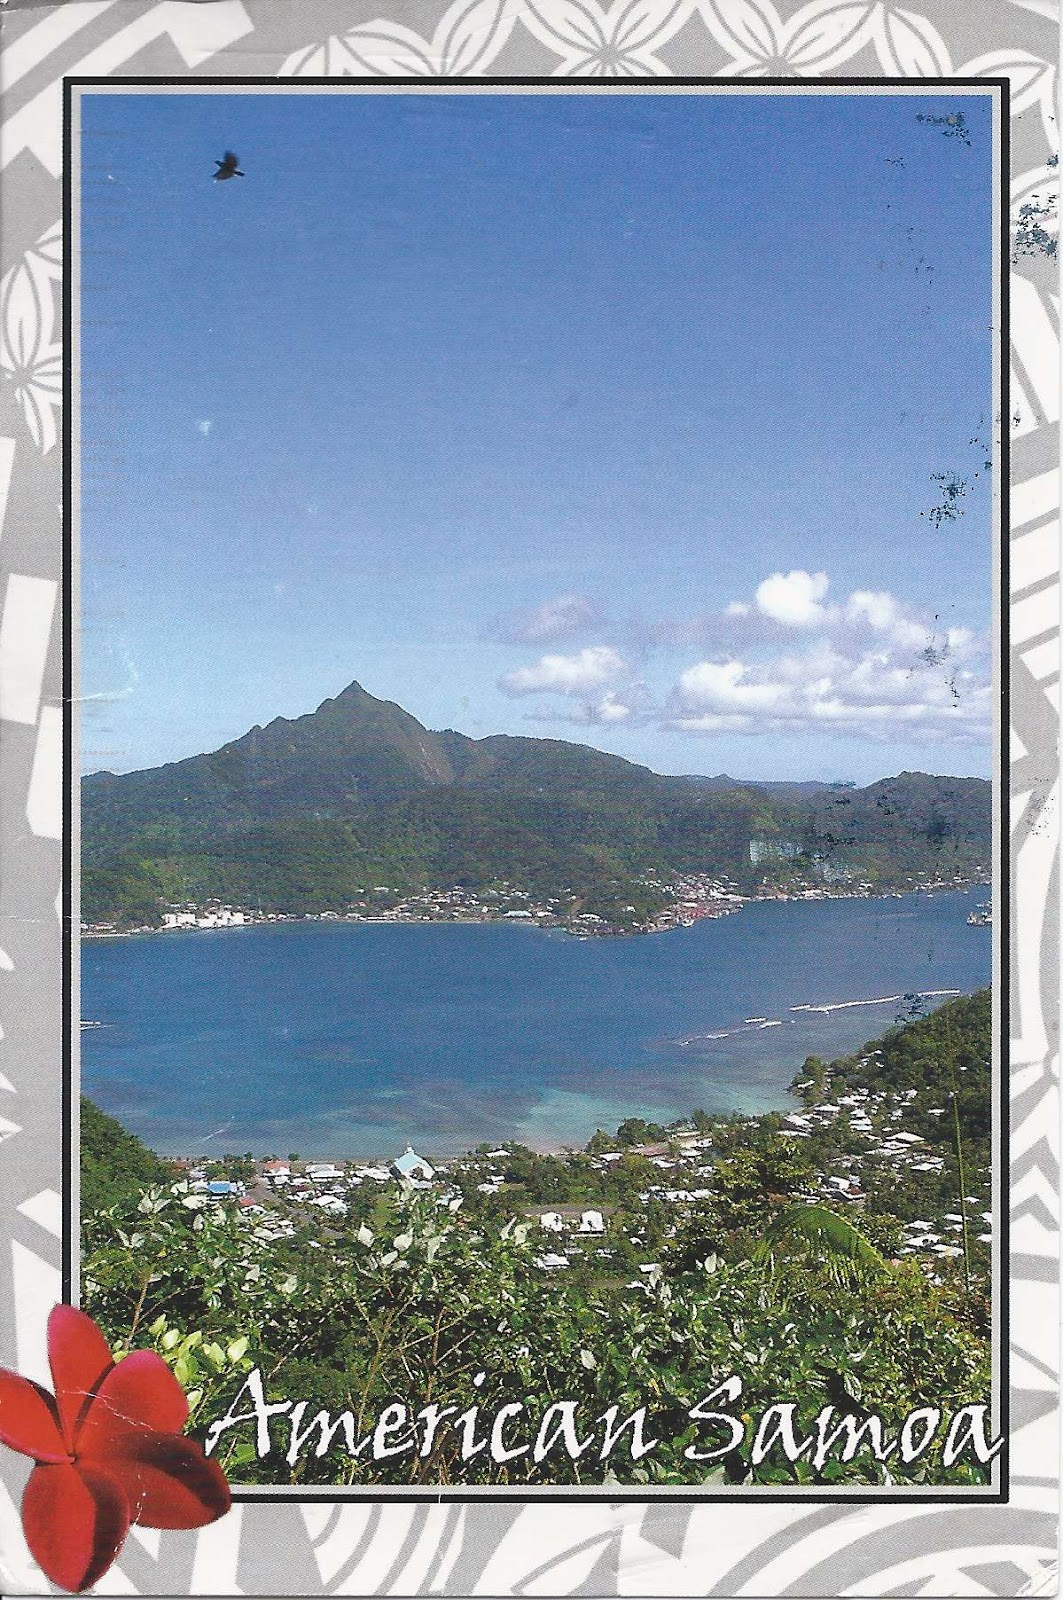 A Journey Of Postcards: A Postcard From American Samoa